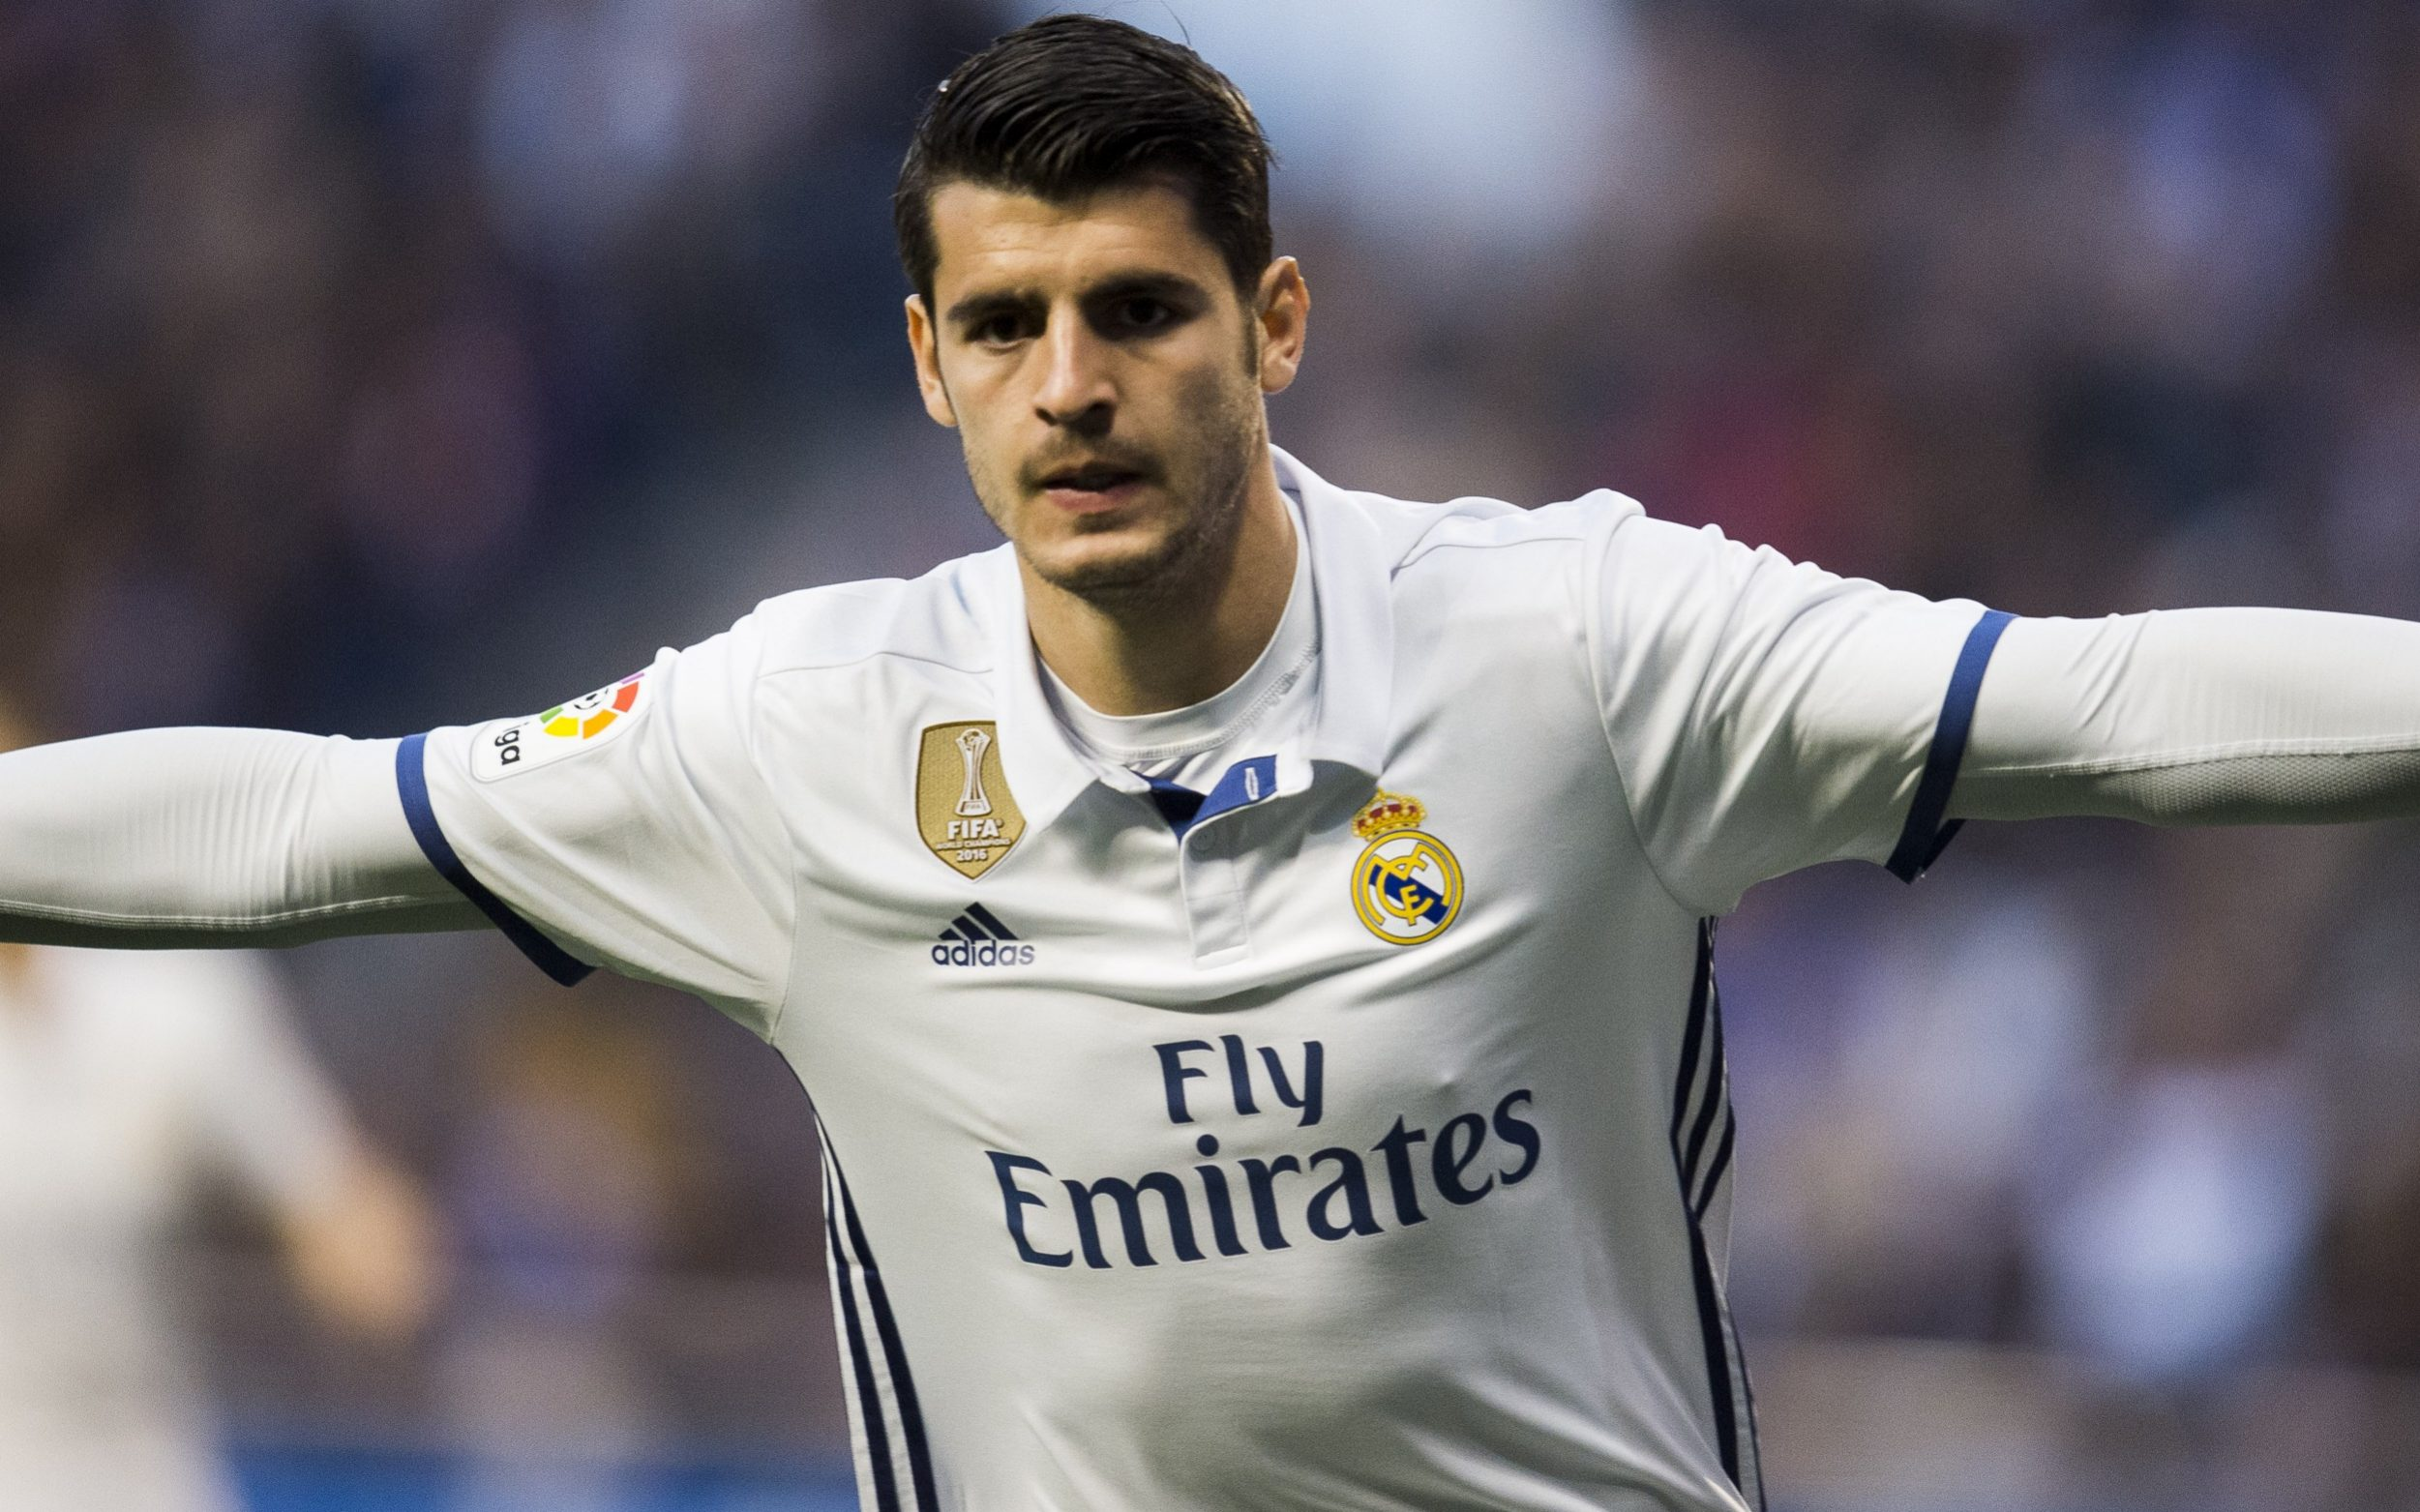 Alvaro Morata - Is he the right choice for Juventus? -Juvefc.com